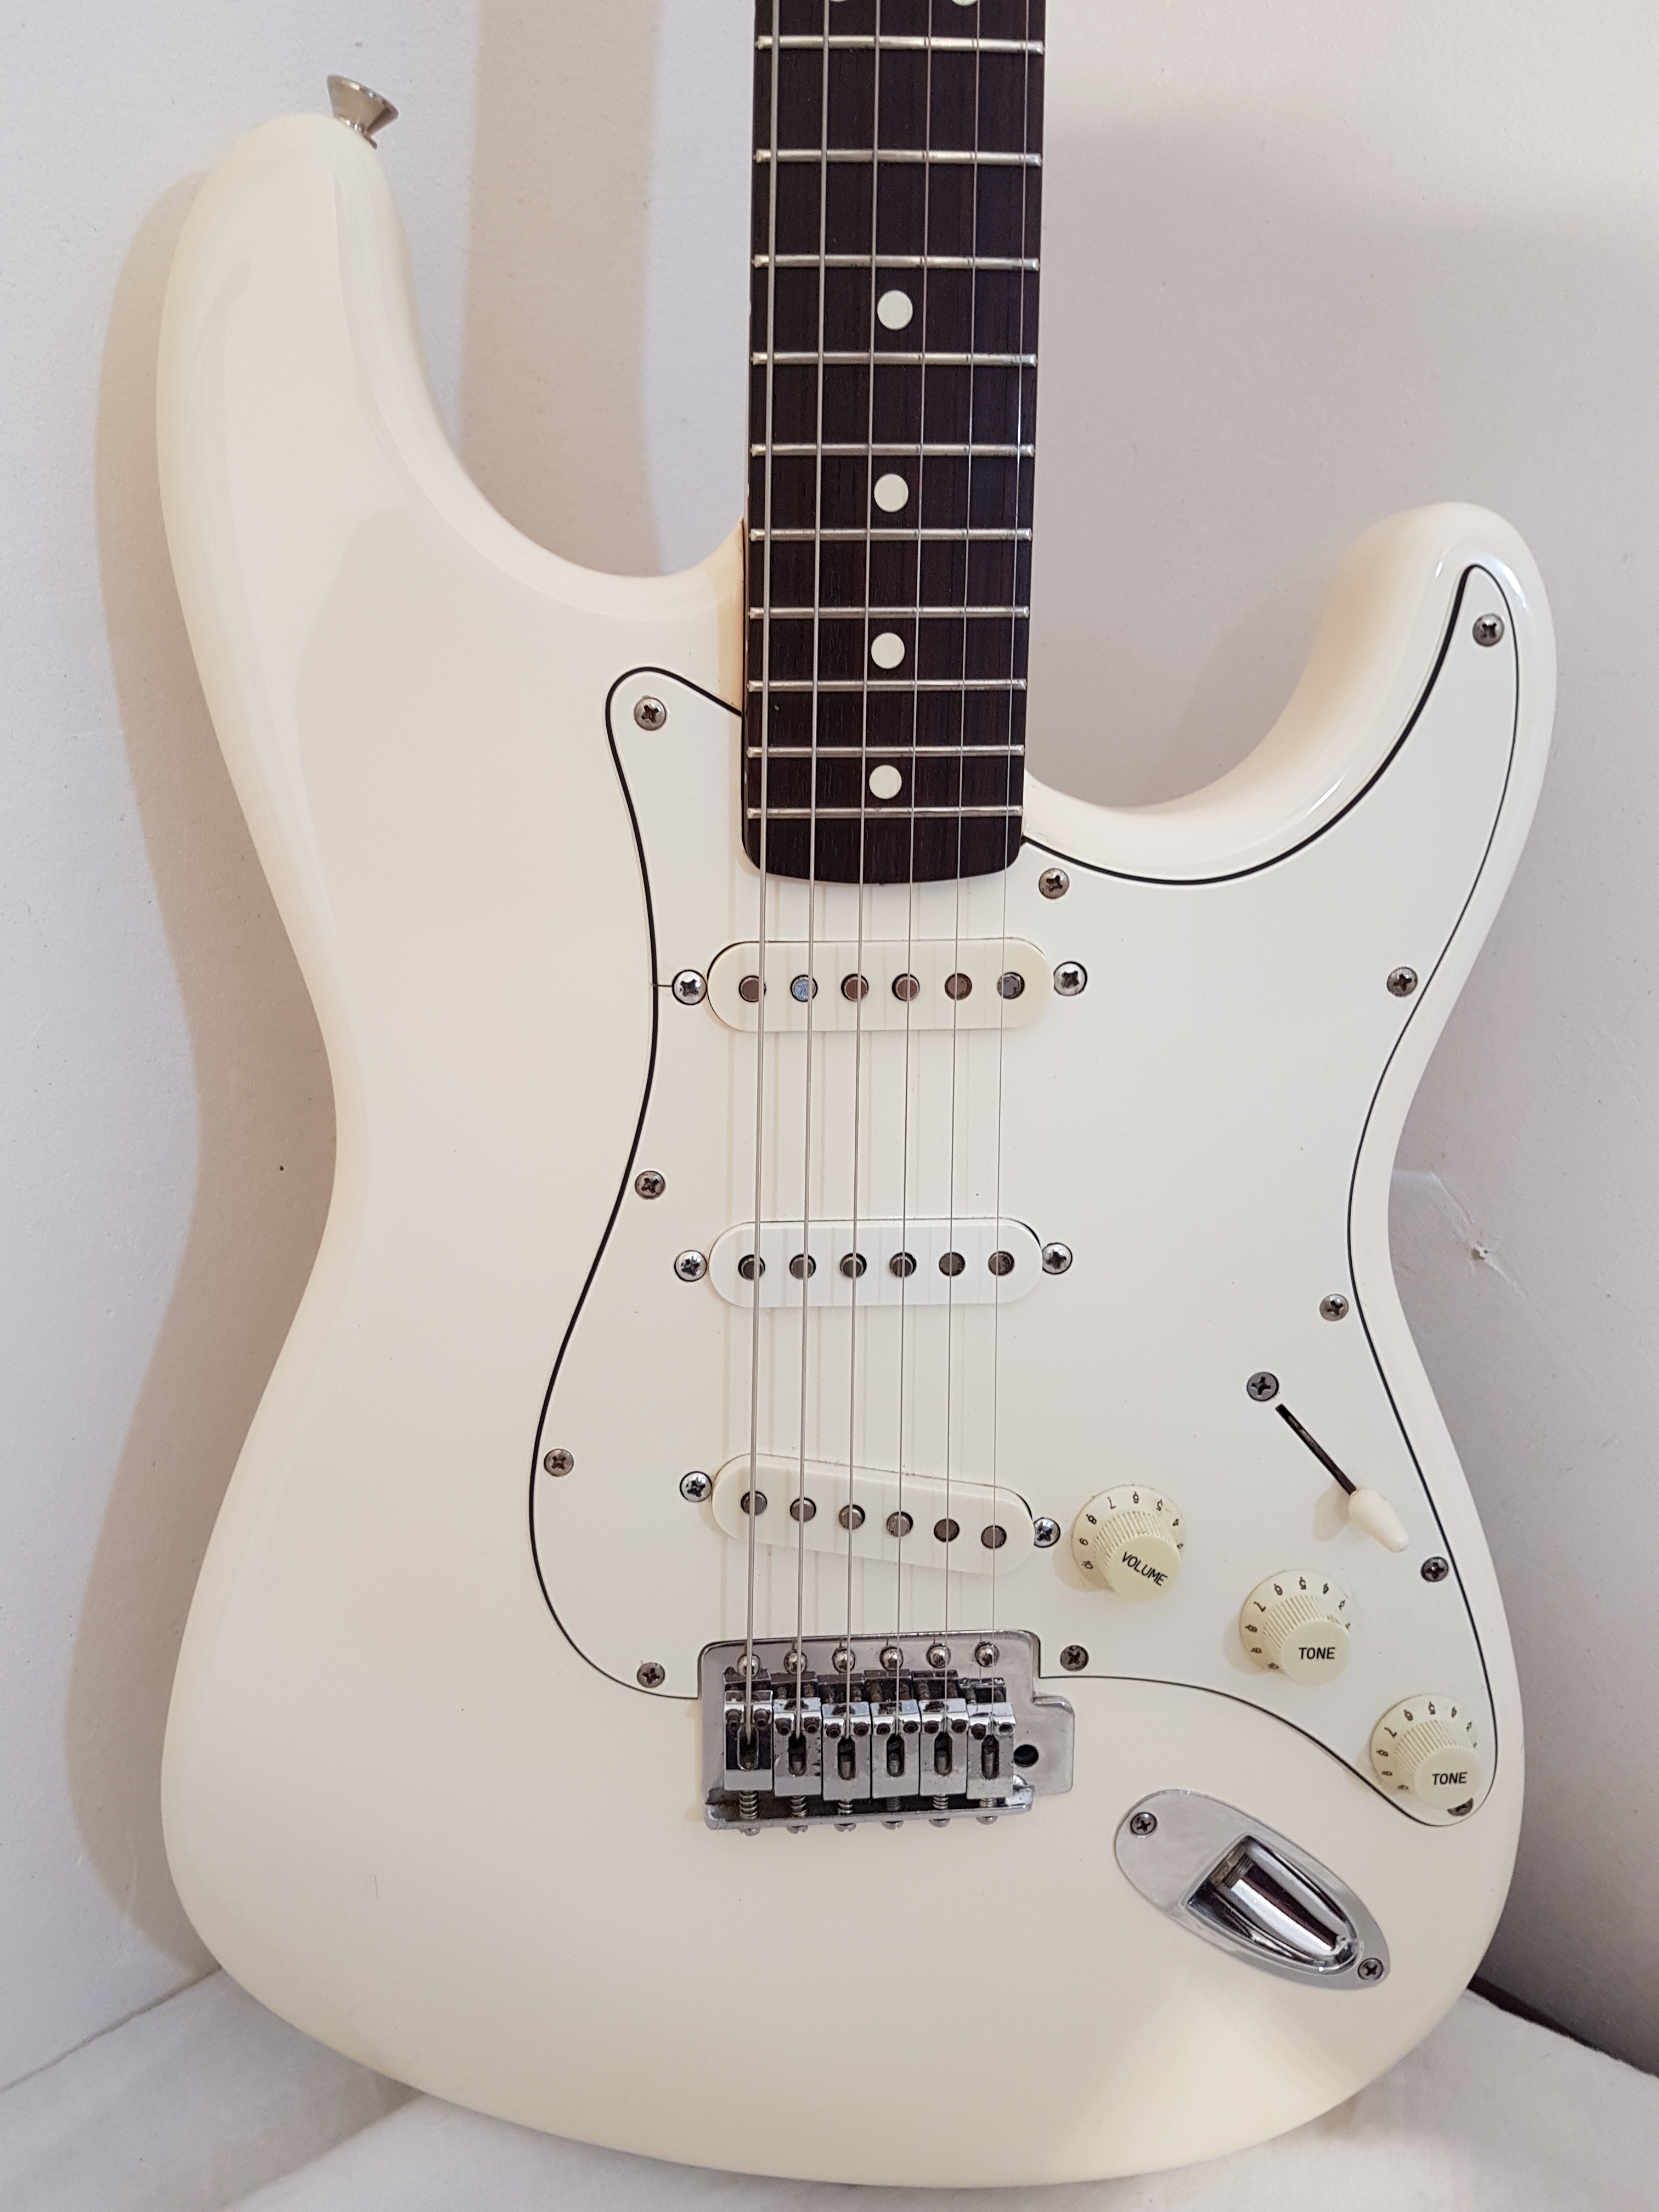 Guitar Pickups Made In Usa : fender stratocaster 1990 made in the usa for export rare i series usa fender cs pickups ~ Russianpoet.info Haus und Dekorationen